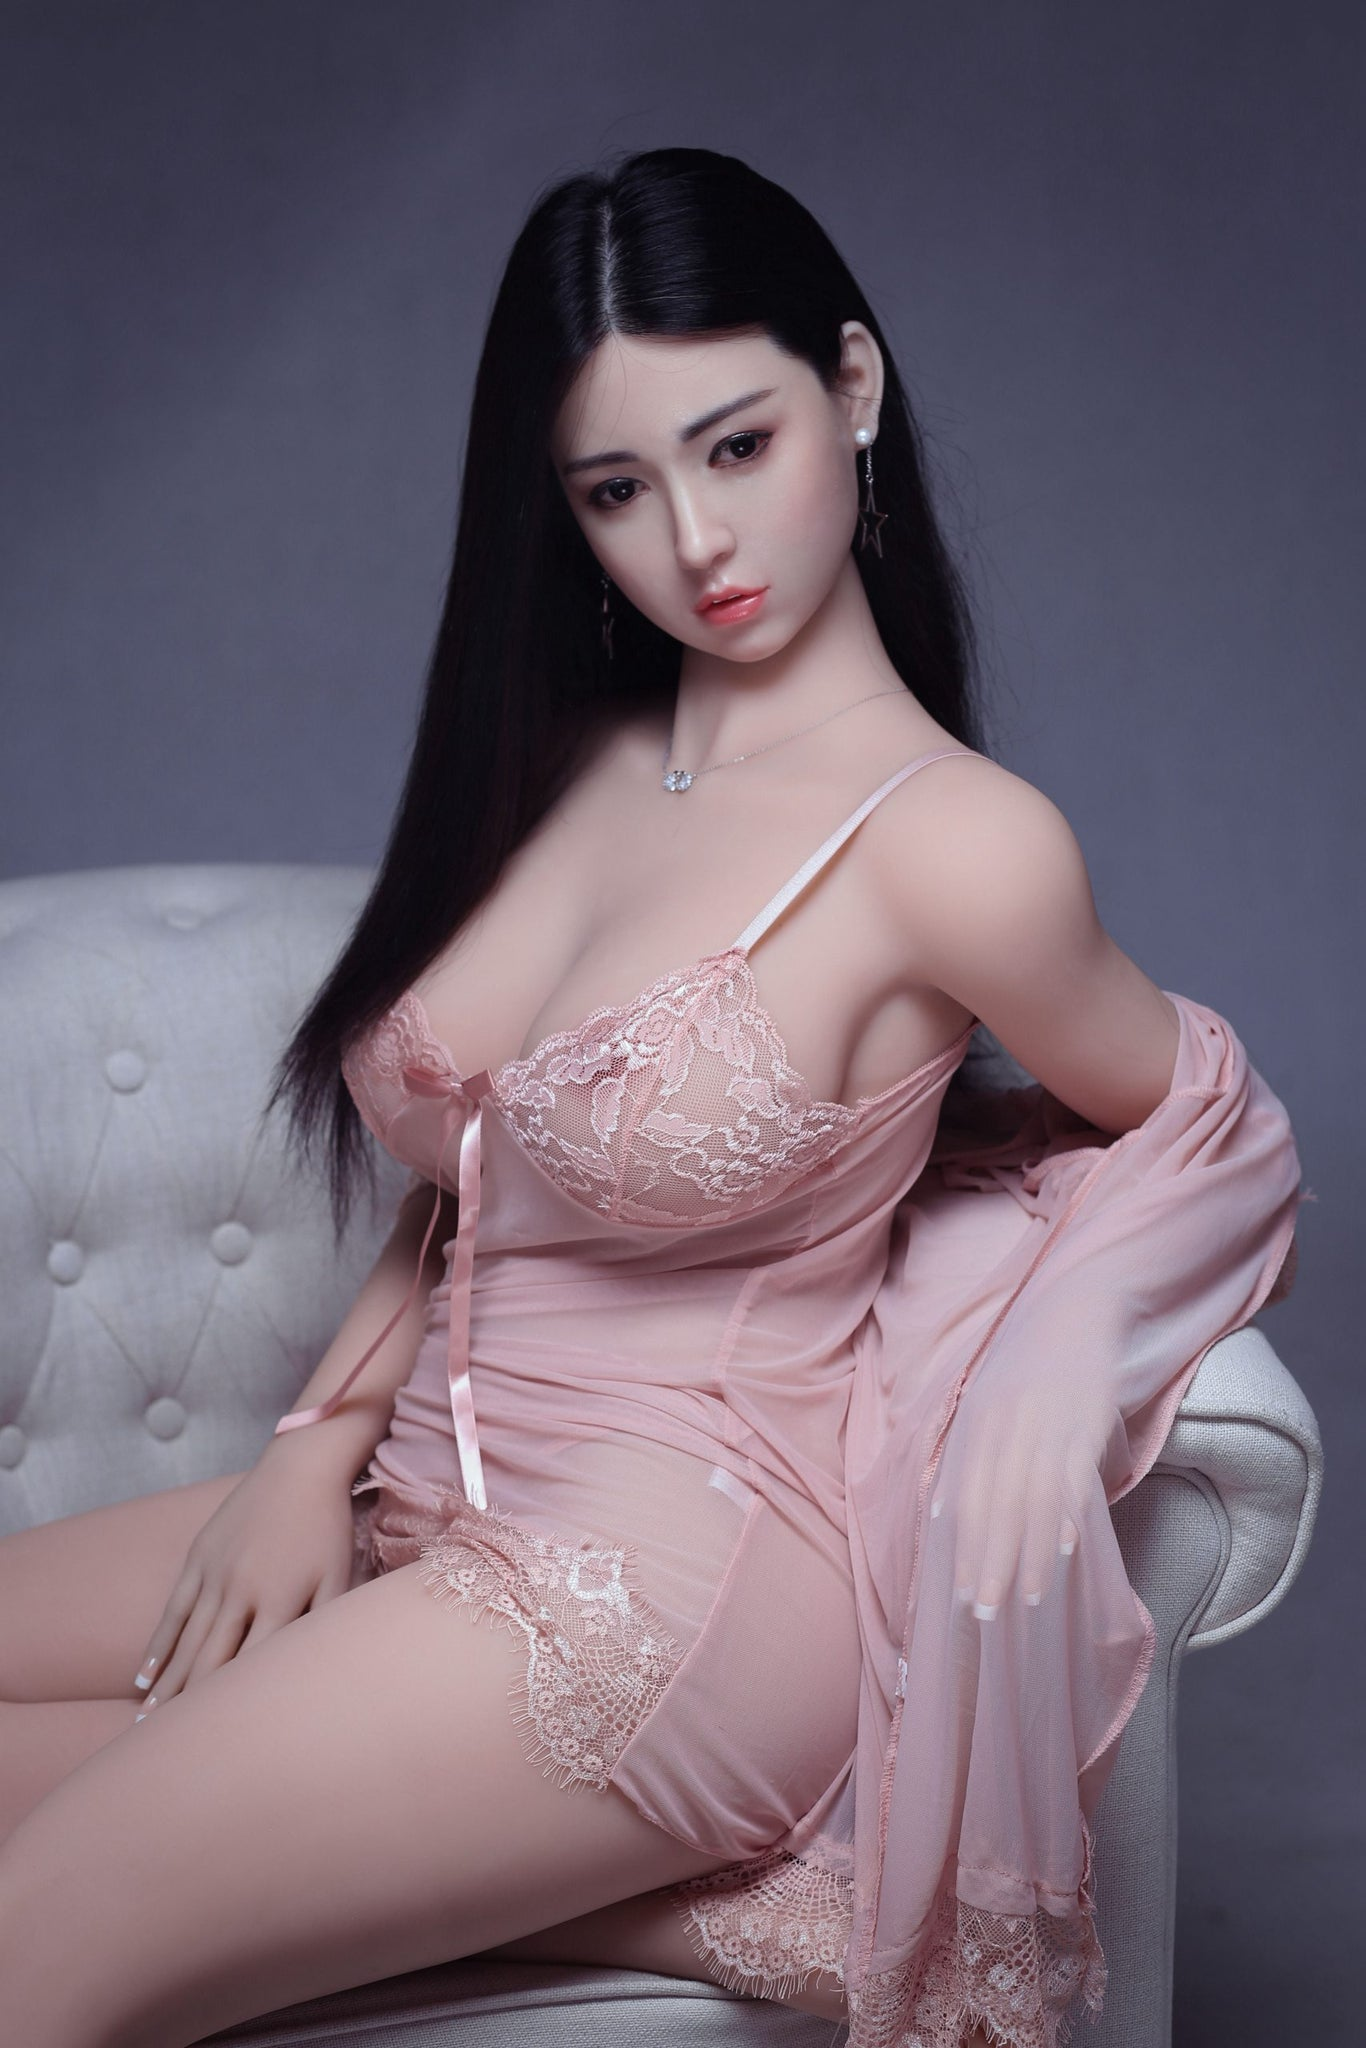 troja 161cm af black hair curvy big boobs athletic best tpe sex doll(7)